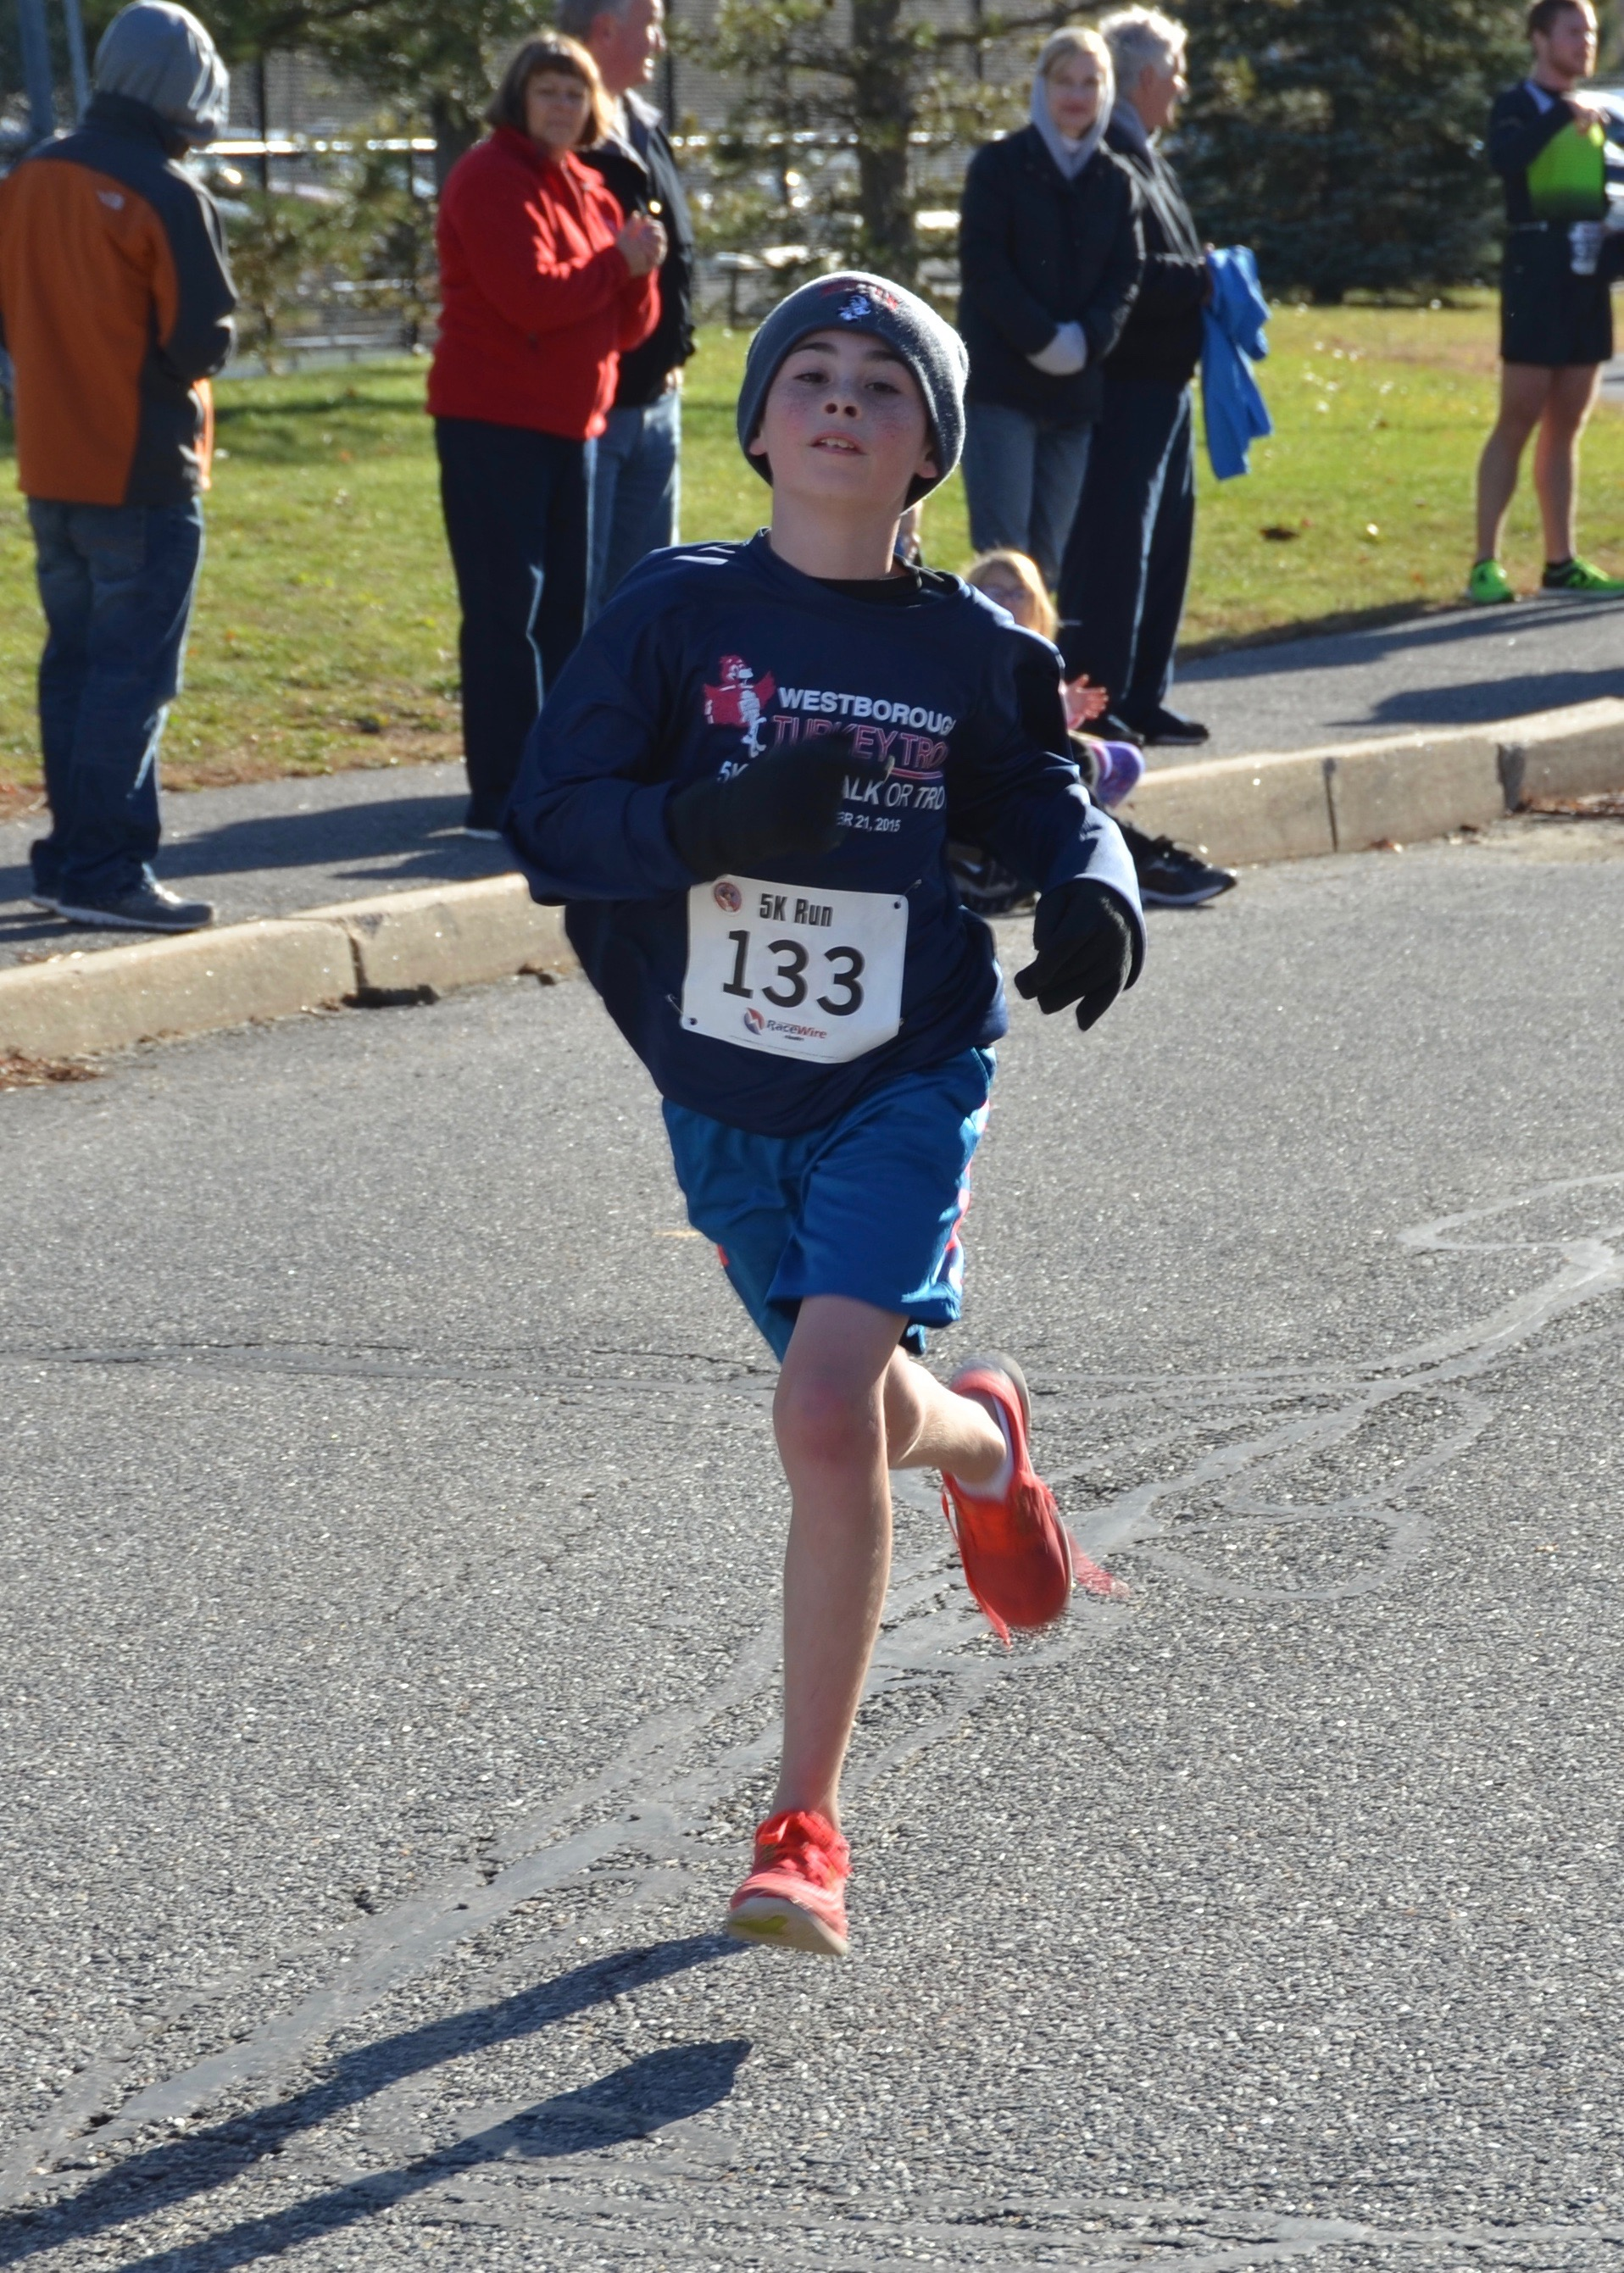 D7K_0030011-Westborough-Turkey-Trot-2015-11-21.jpg